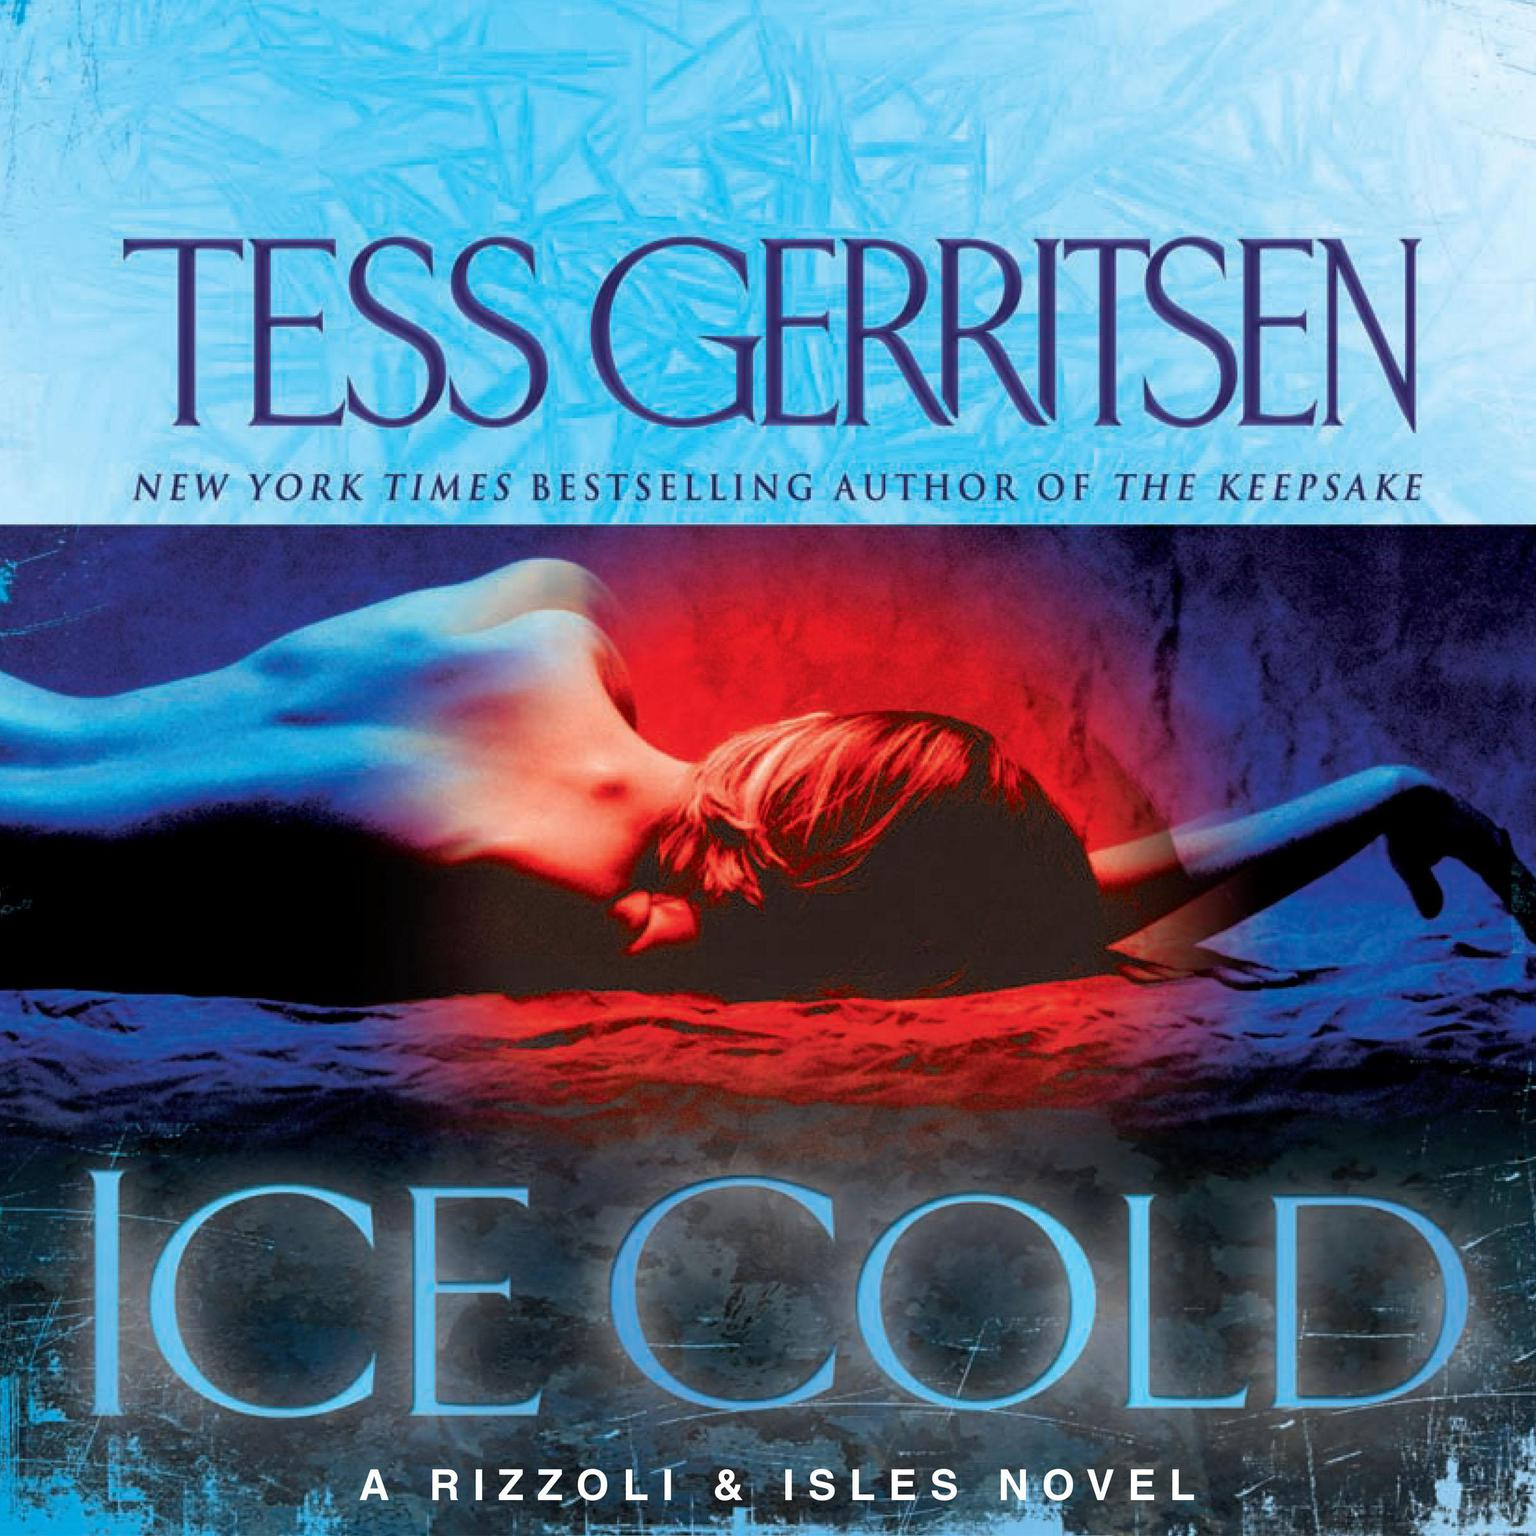 Printable Ice Cold: A Rizzoli & Isles Novel Audiobook Cover Art